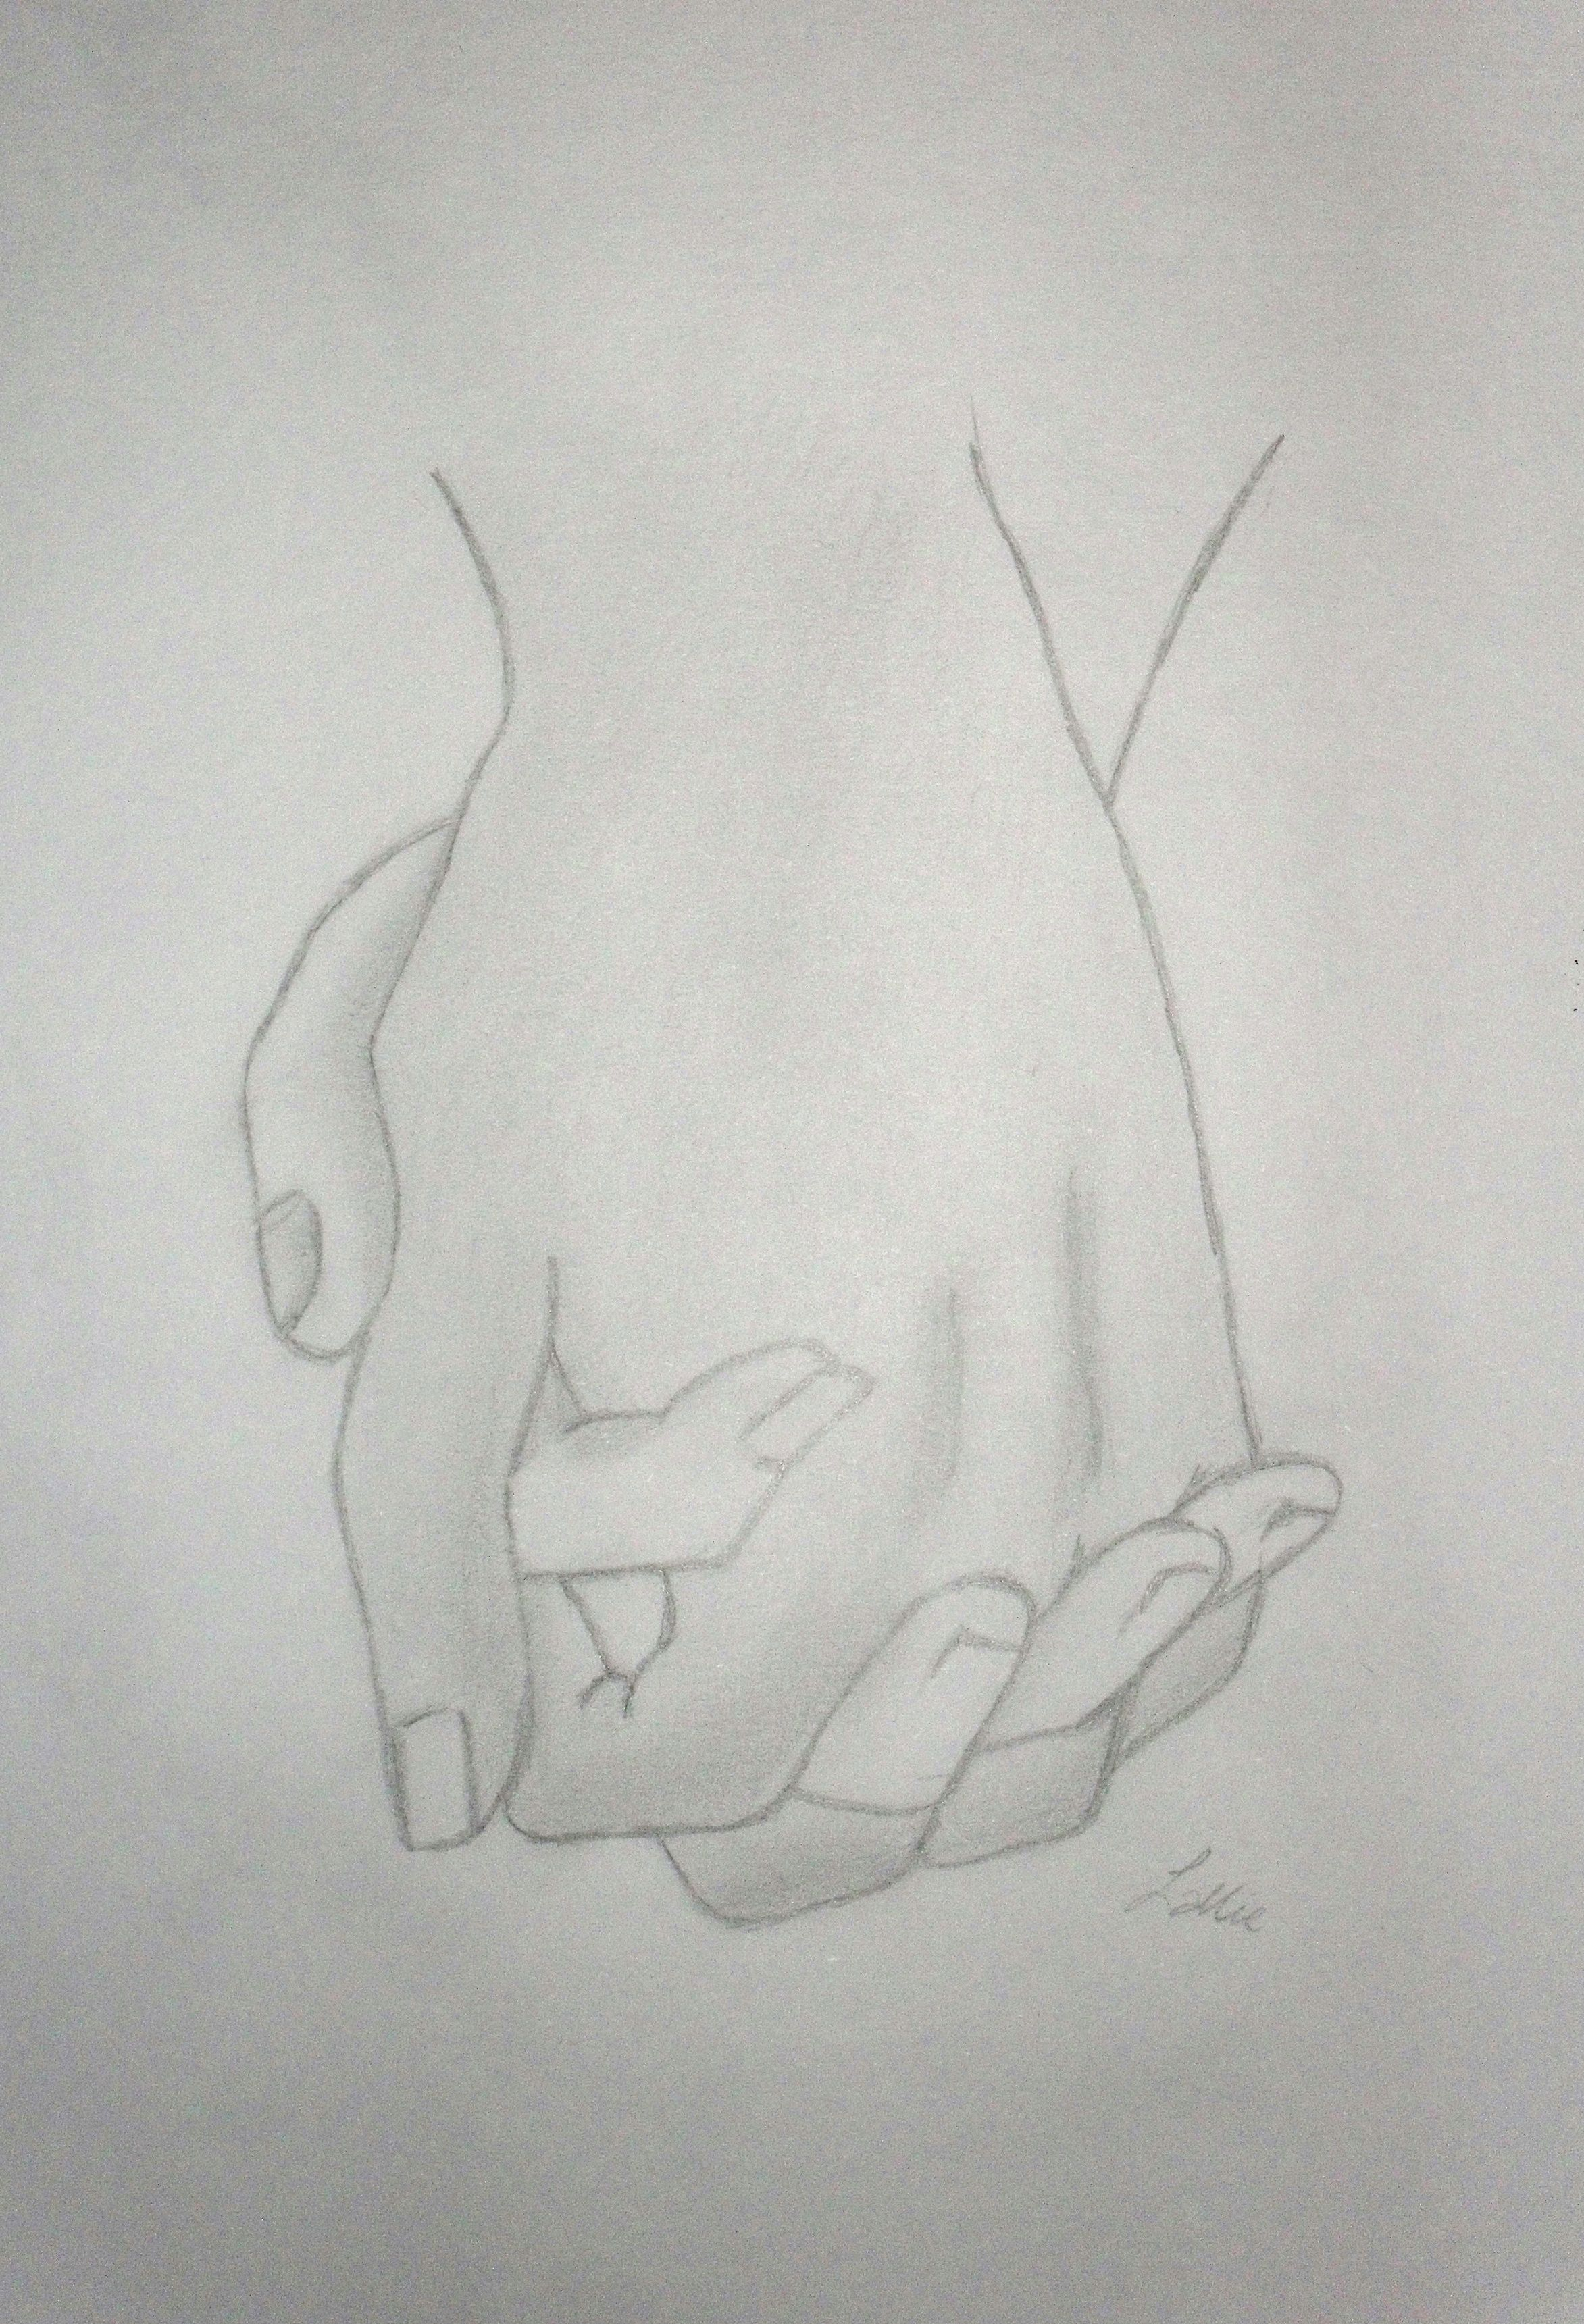 Holding hands drawing lallie 2015 jul 4 2012